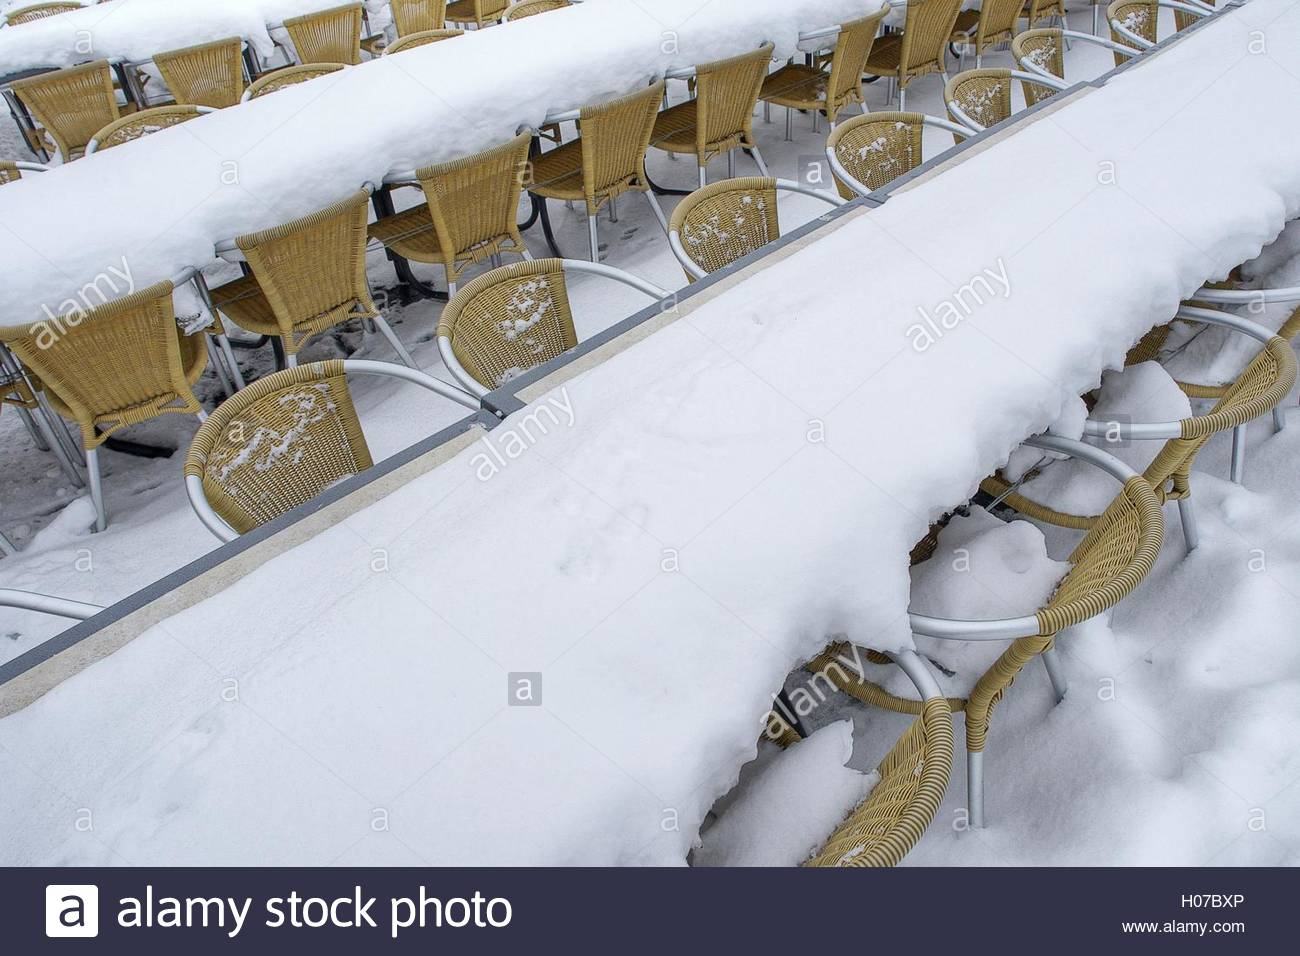 Vive Le Vent D Hiver Metal mã bel stock photos & mã bel stock images - alamy